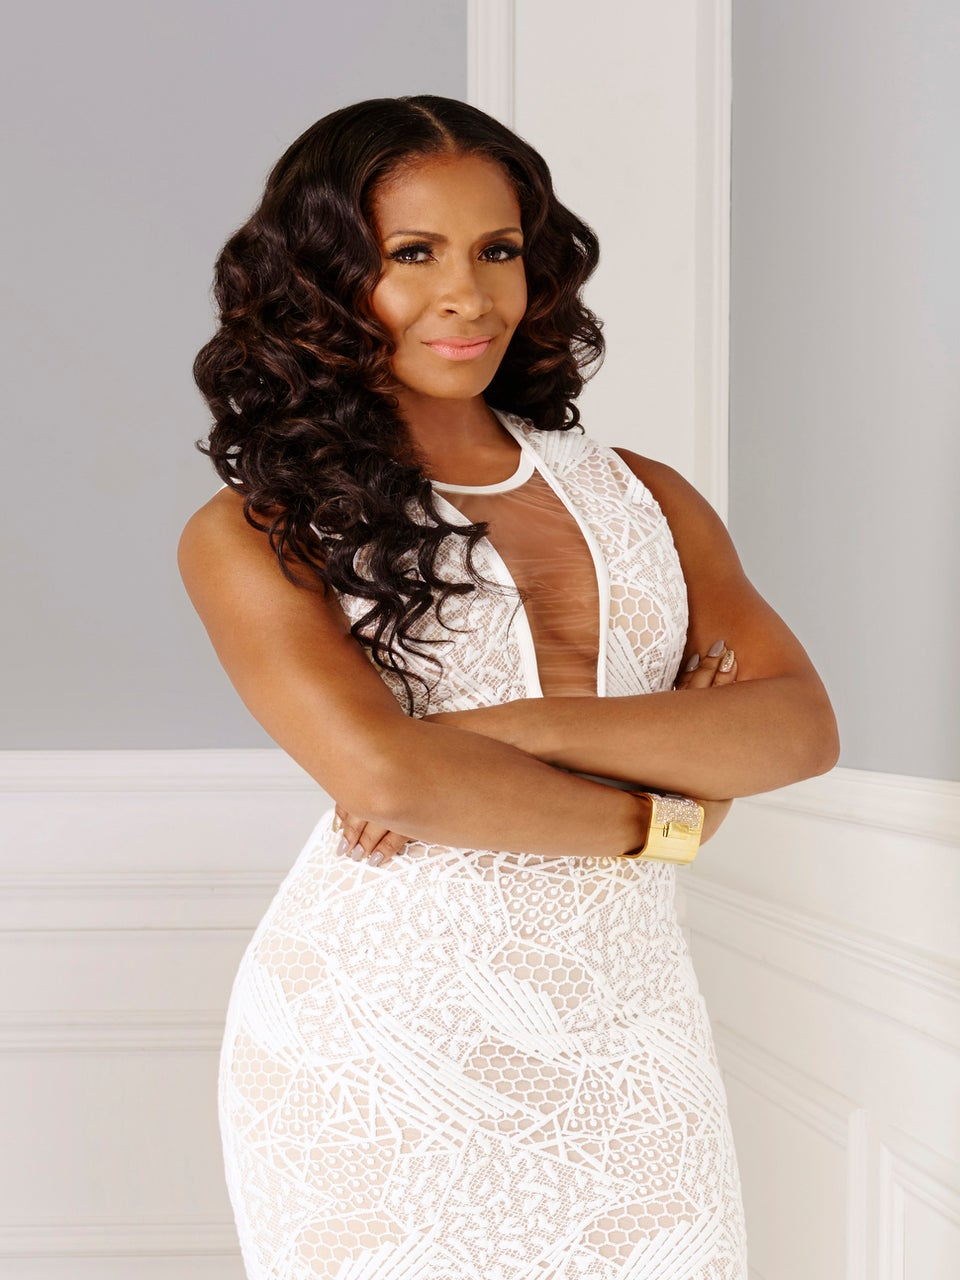 'Real Housewives' Star Shereé Whitfield Takes Fans Inside Chateau Shereé